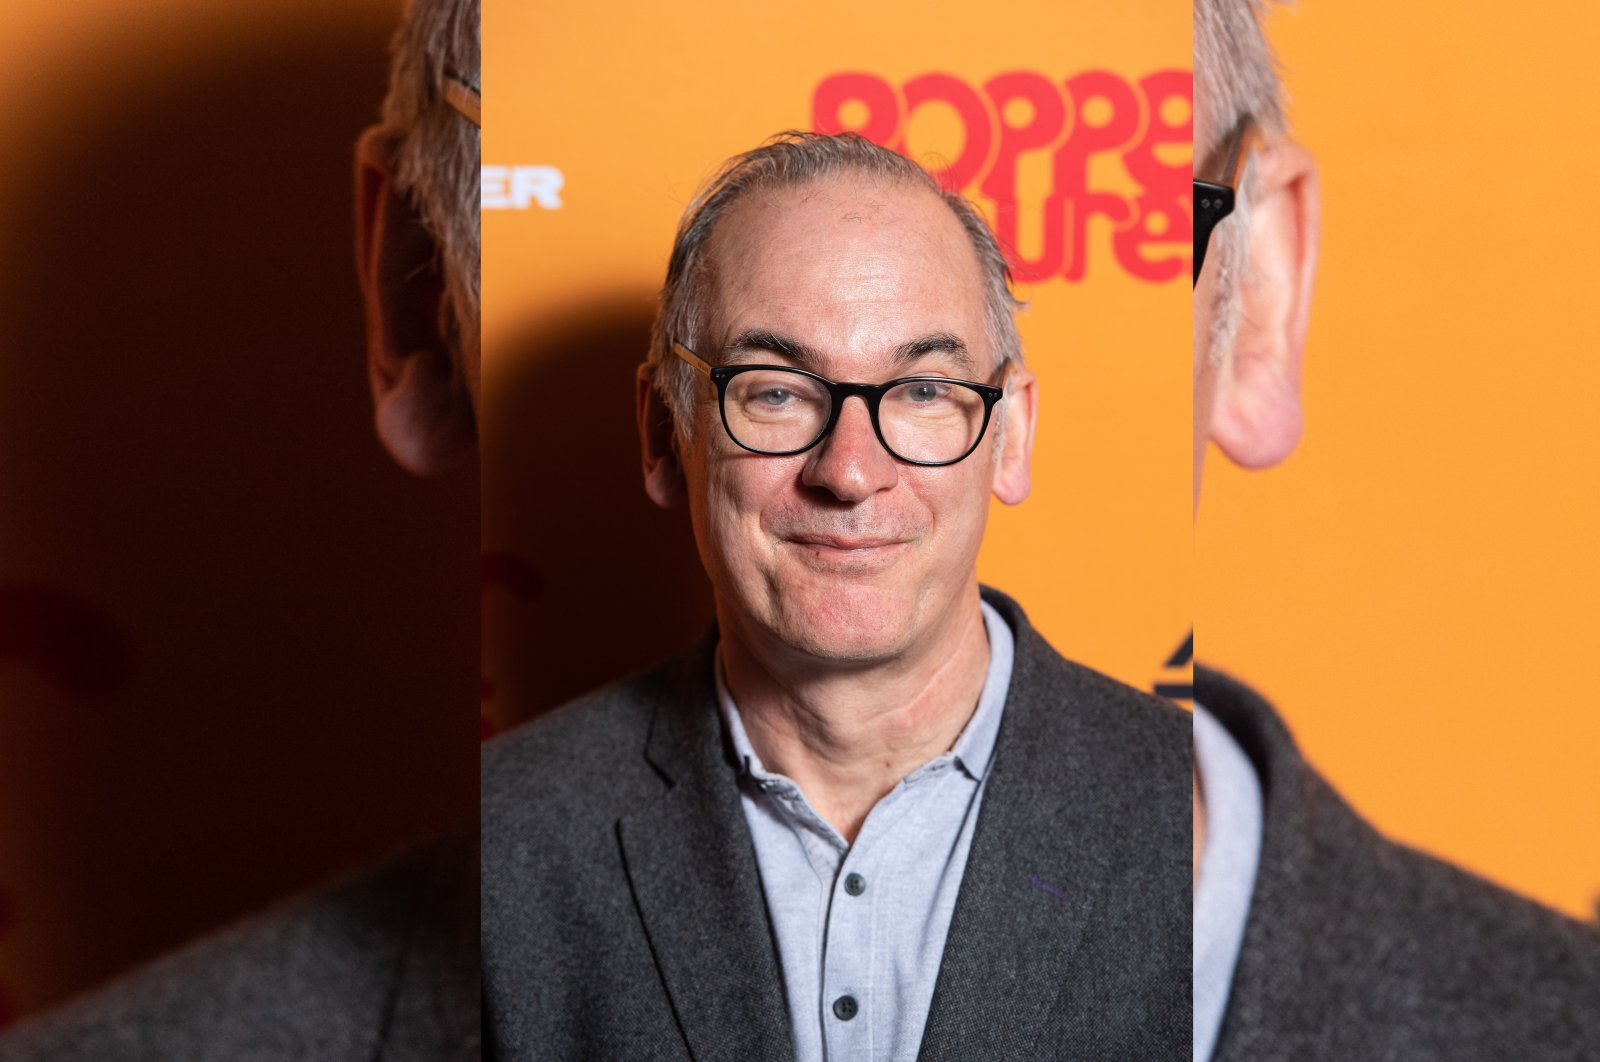 """Paul Ritter attends the """"Friday Night Dinner"""" photocall at Curzon Soho, in London, England, March 09, 2020. (/Getty Images)"""